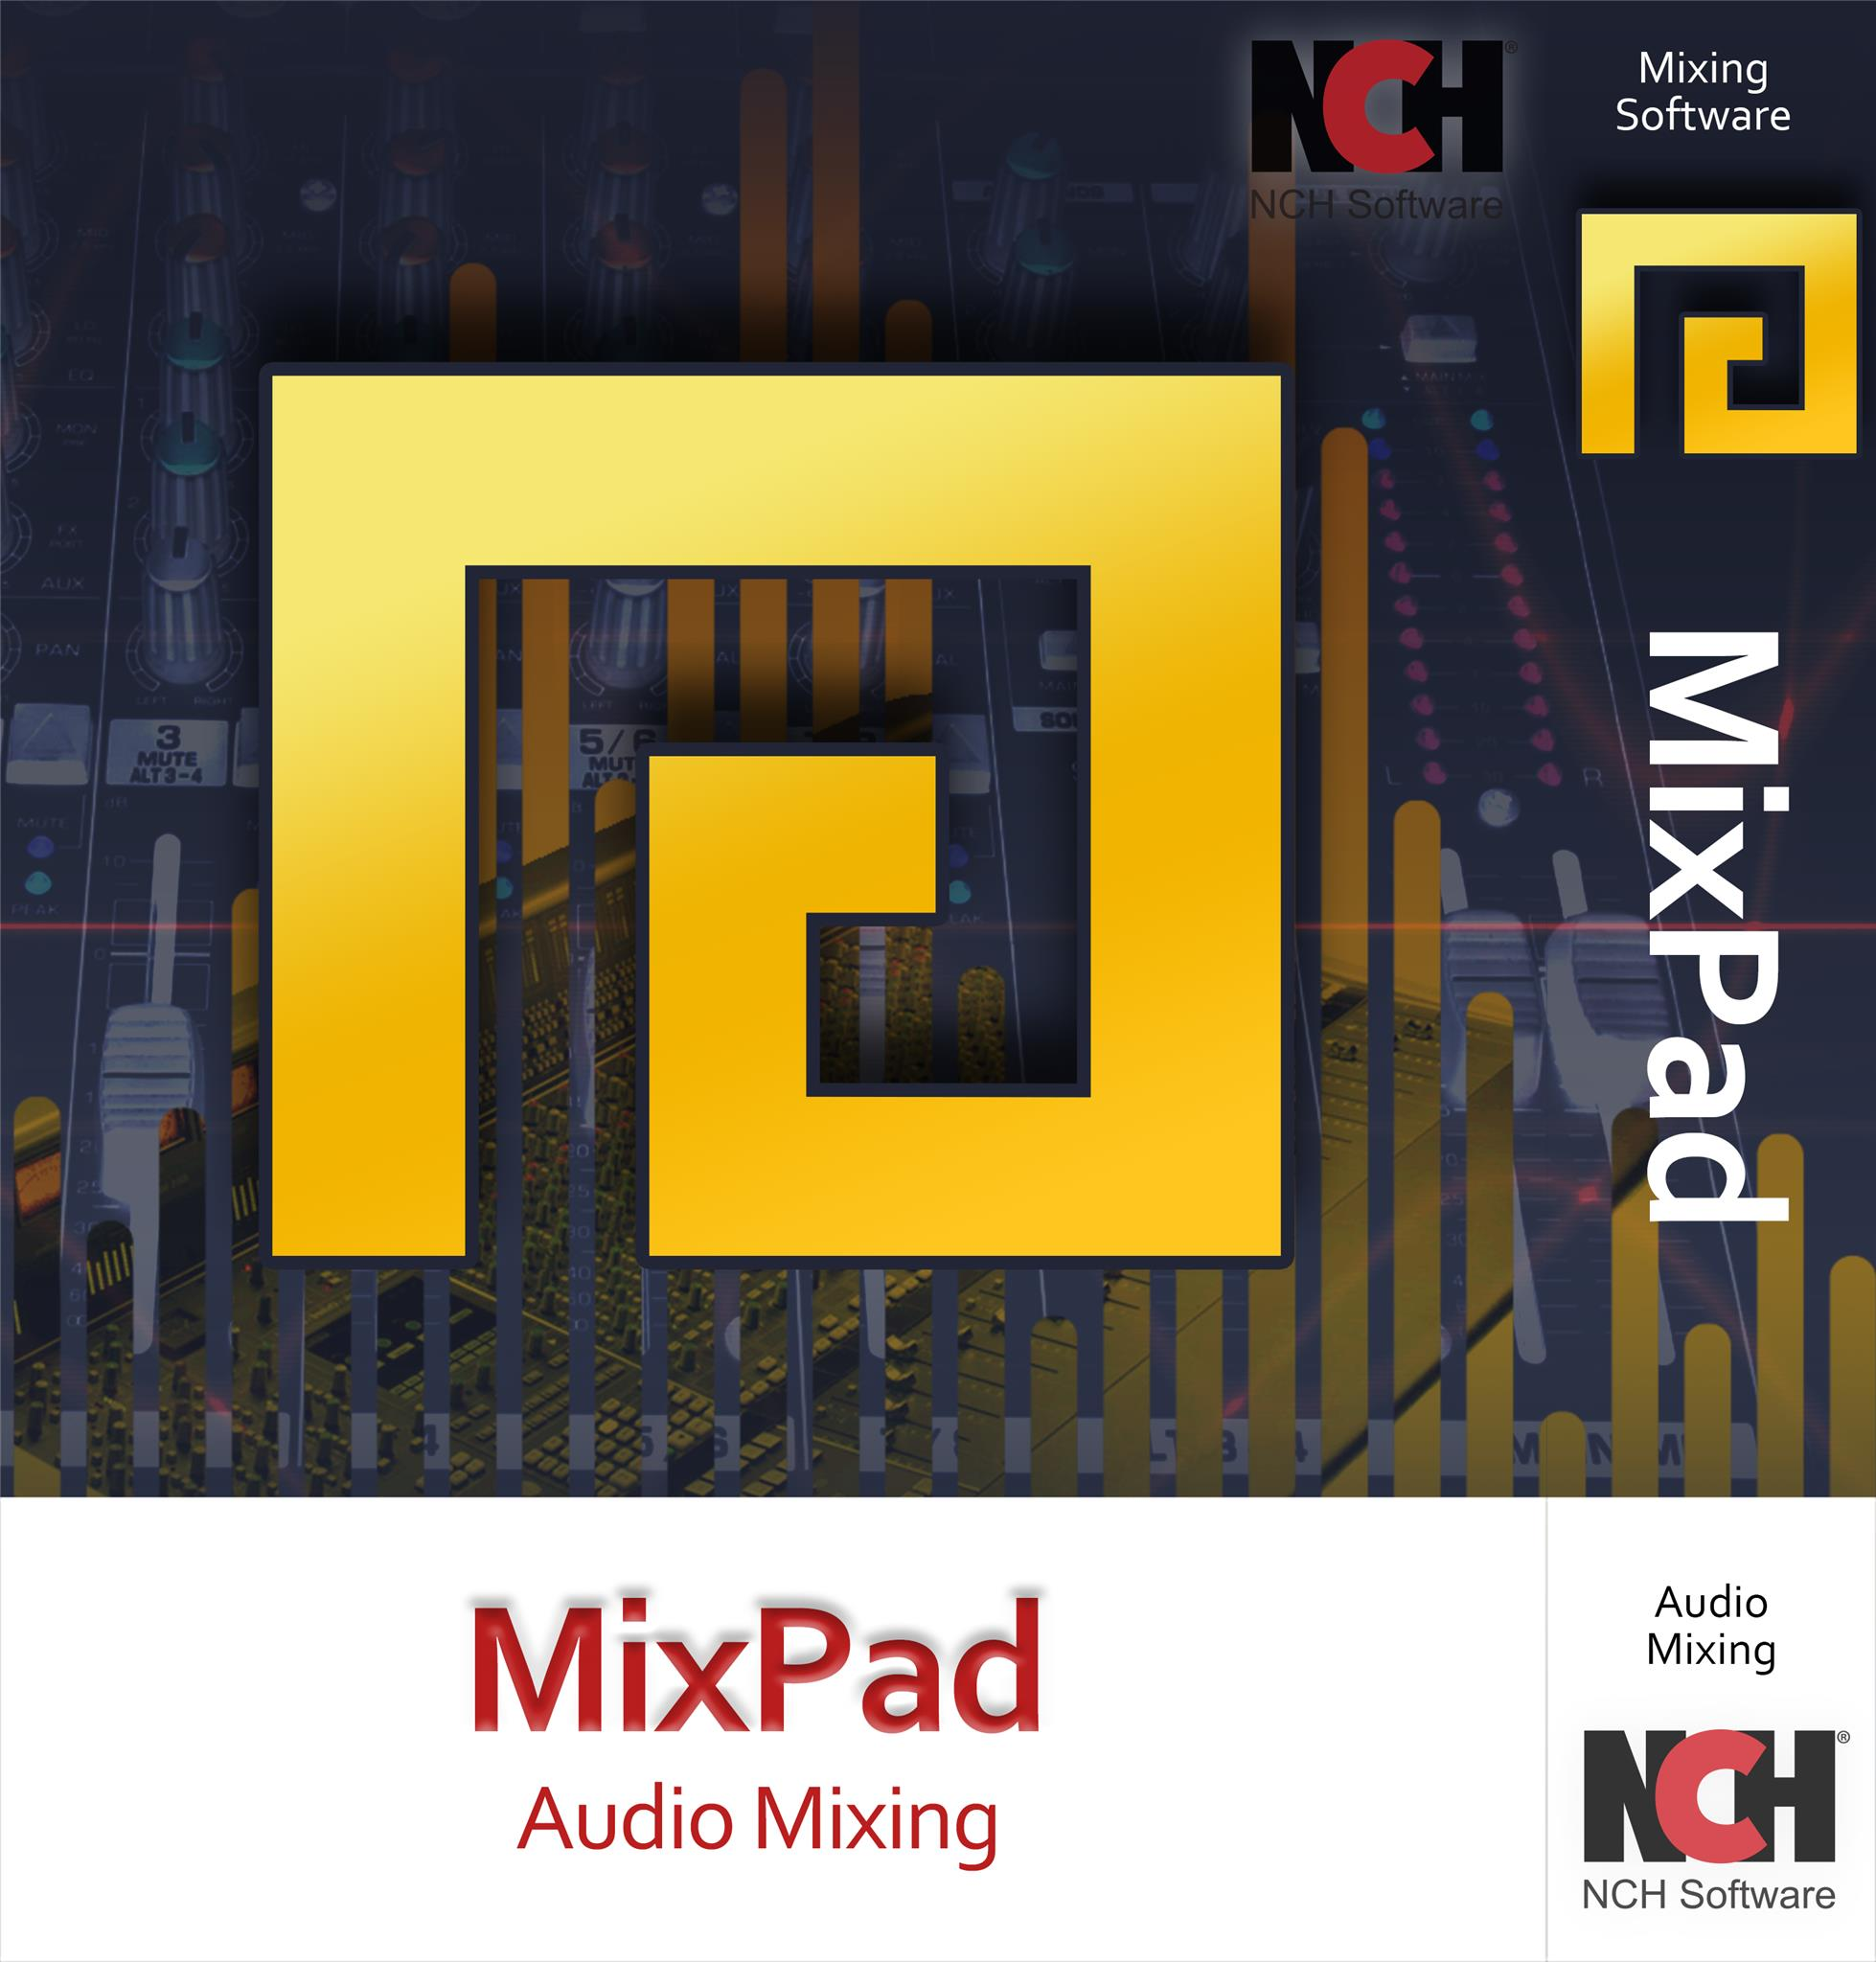 MixPad Multitrack Recording Software for Sound Mixing and Music Production [Download] by NCH Software